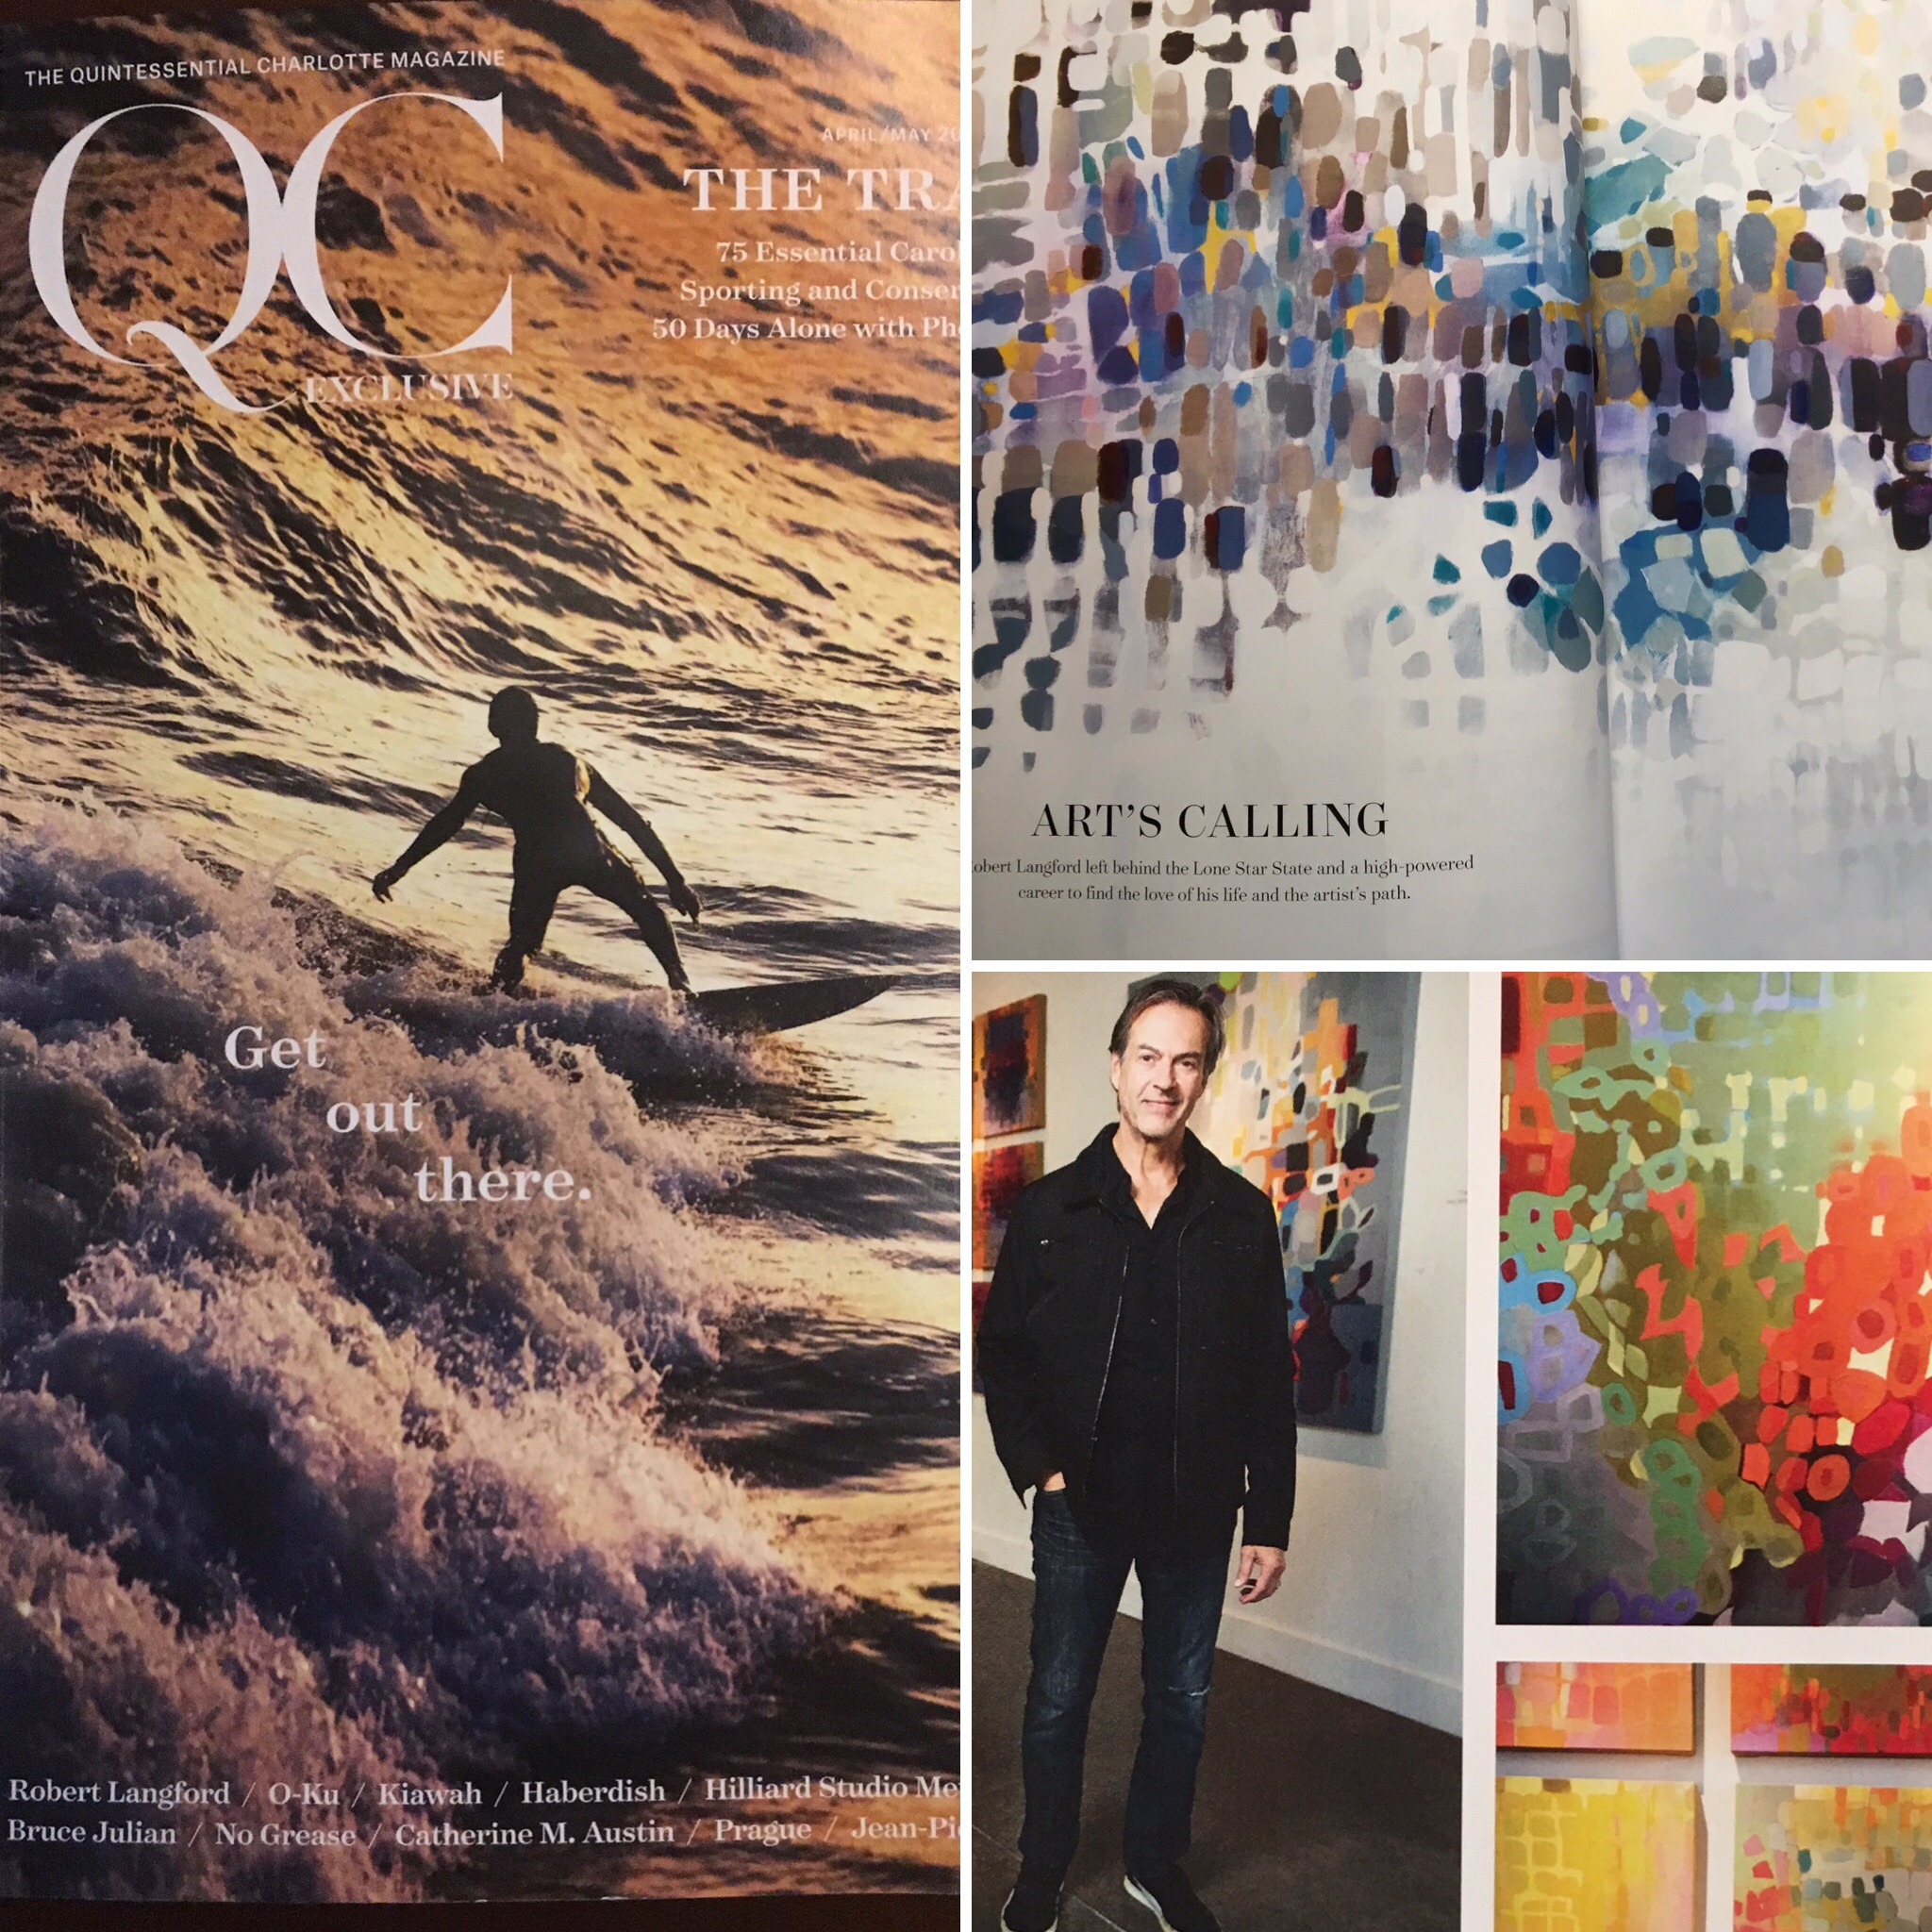 QC Exclusive - Thanks to writer Sunny Hubler and photographer Jamey Price for a great article in the April/May travel issue of QC Exclusive.